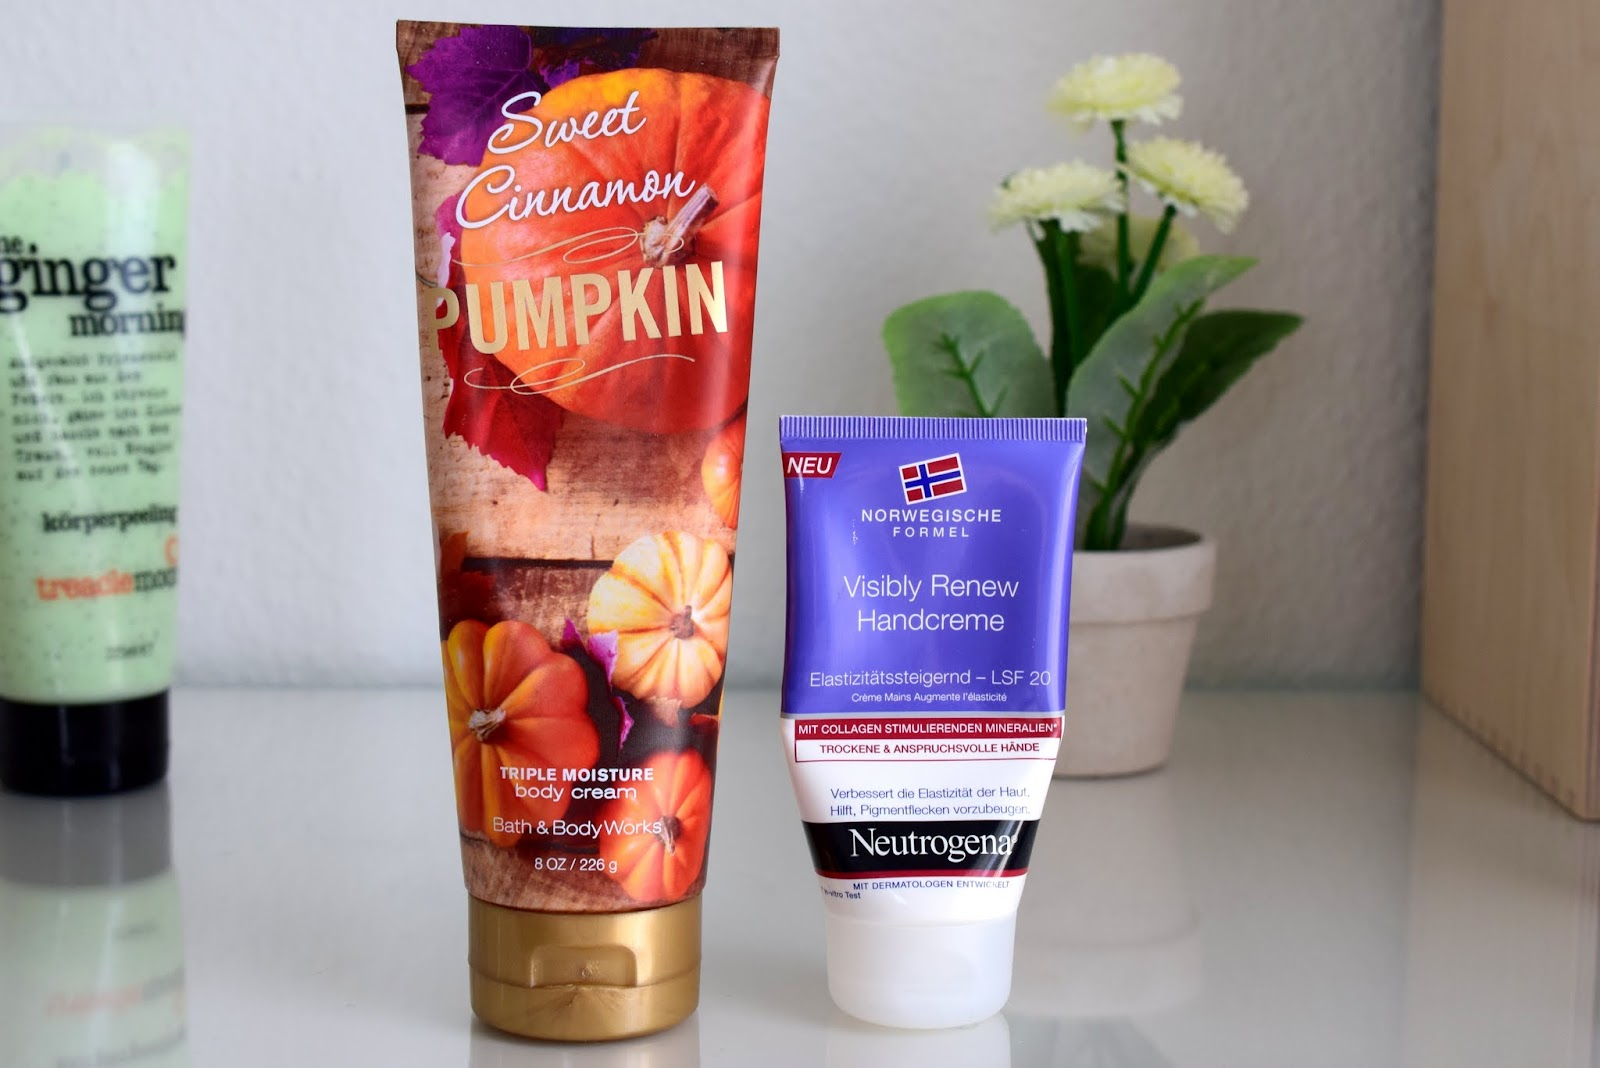 Beauty Favoriten im März: Bath and Body Works Sweet Cinnamon Pumpkin und Neutrogena Visibly Renew Handcreme